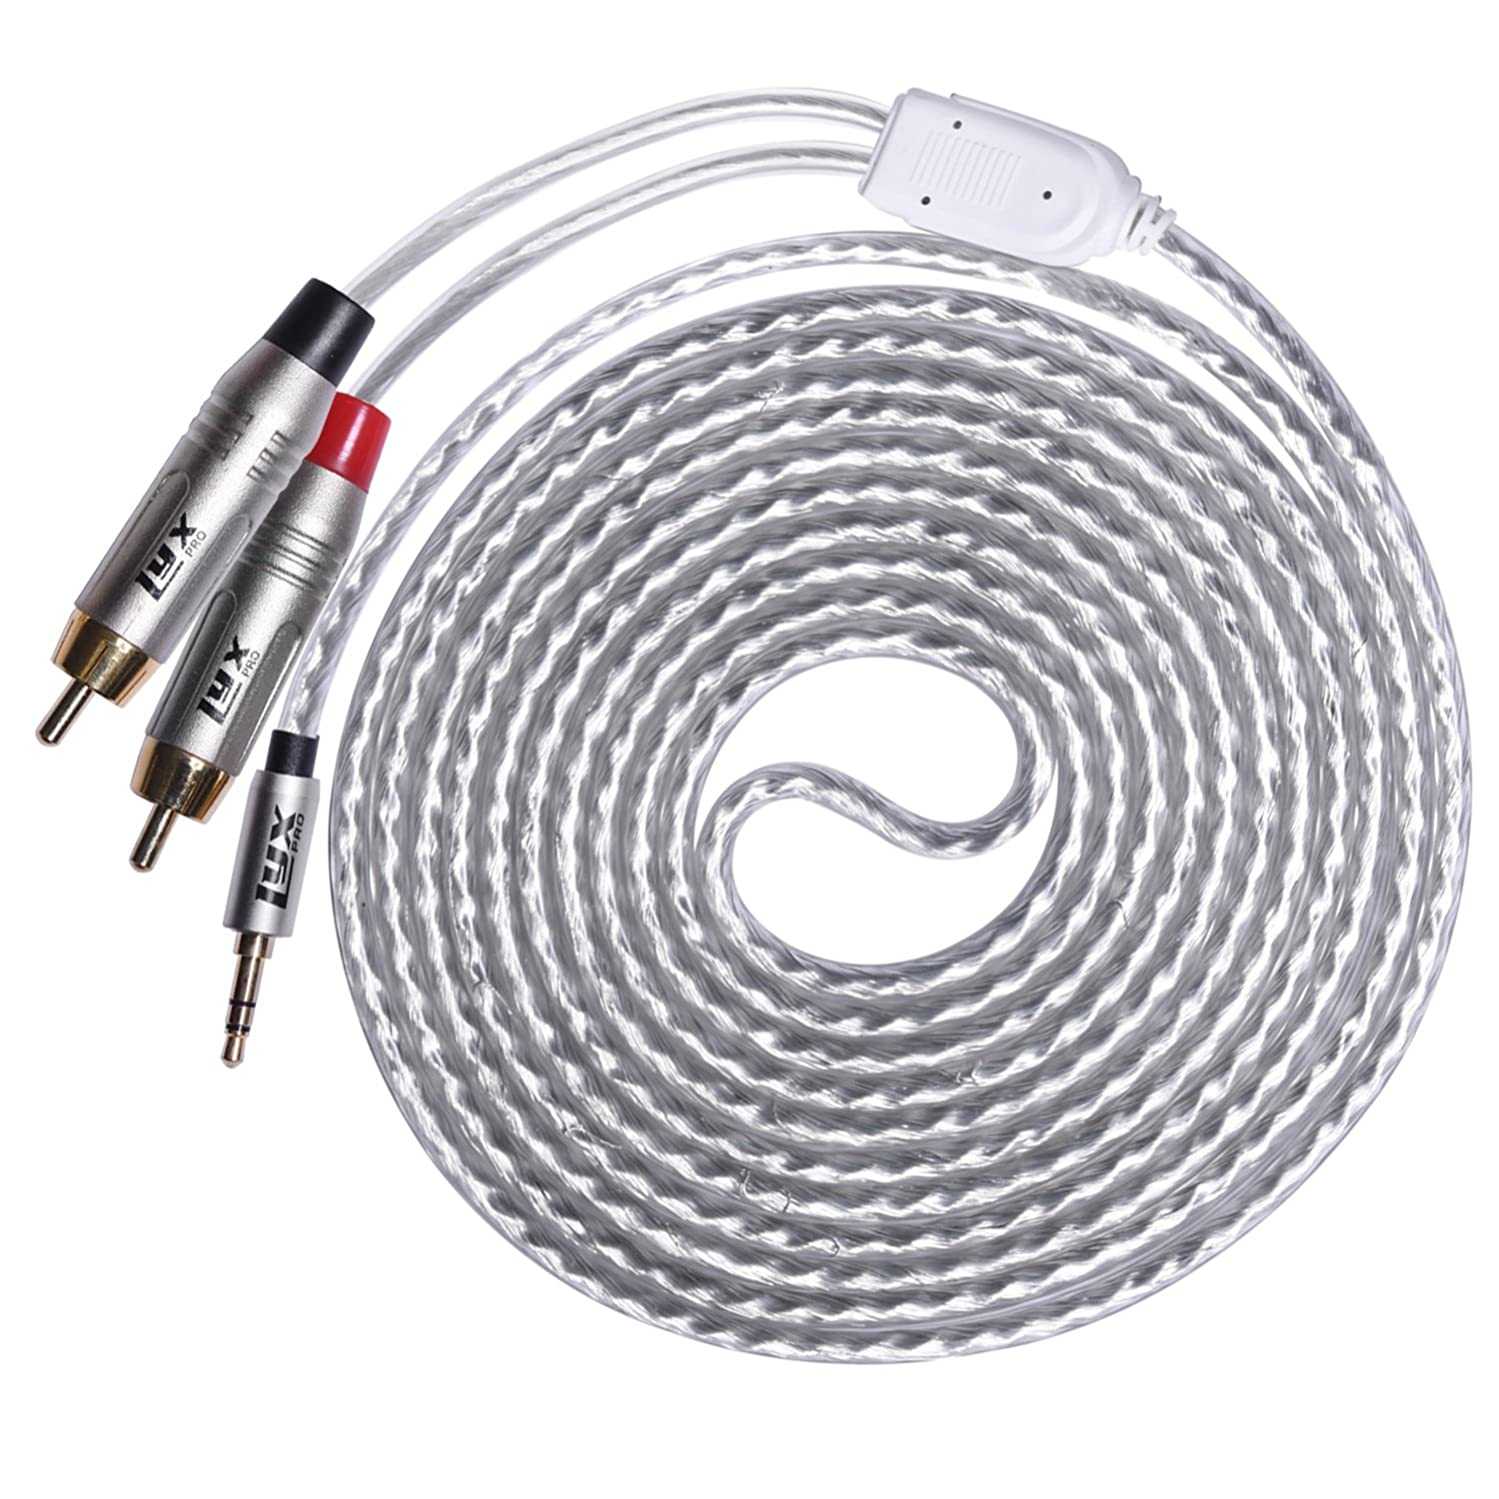 LyxPro Y-Cable Aux to RCA Male 3.5mm Male to Dual RCA Male Stereo Audio Y-Splitter Adapter Cable - 10 Feet